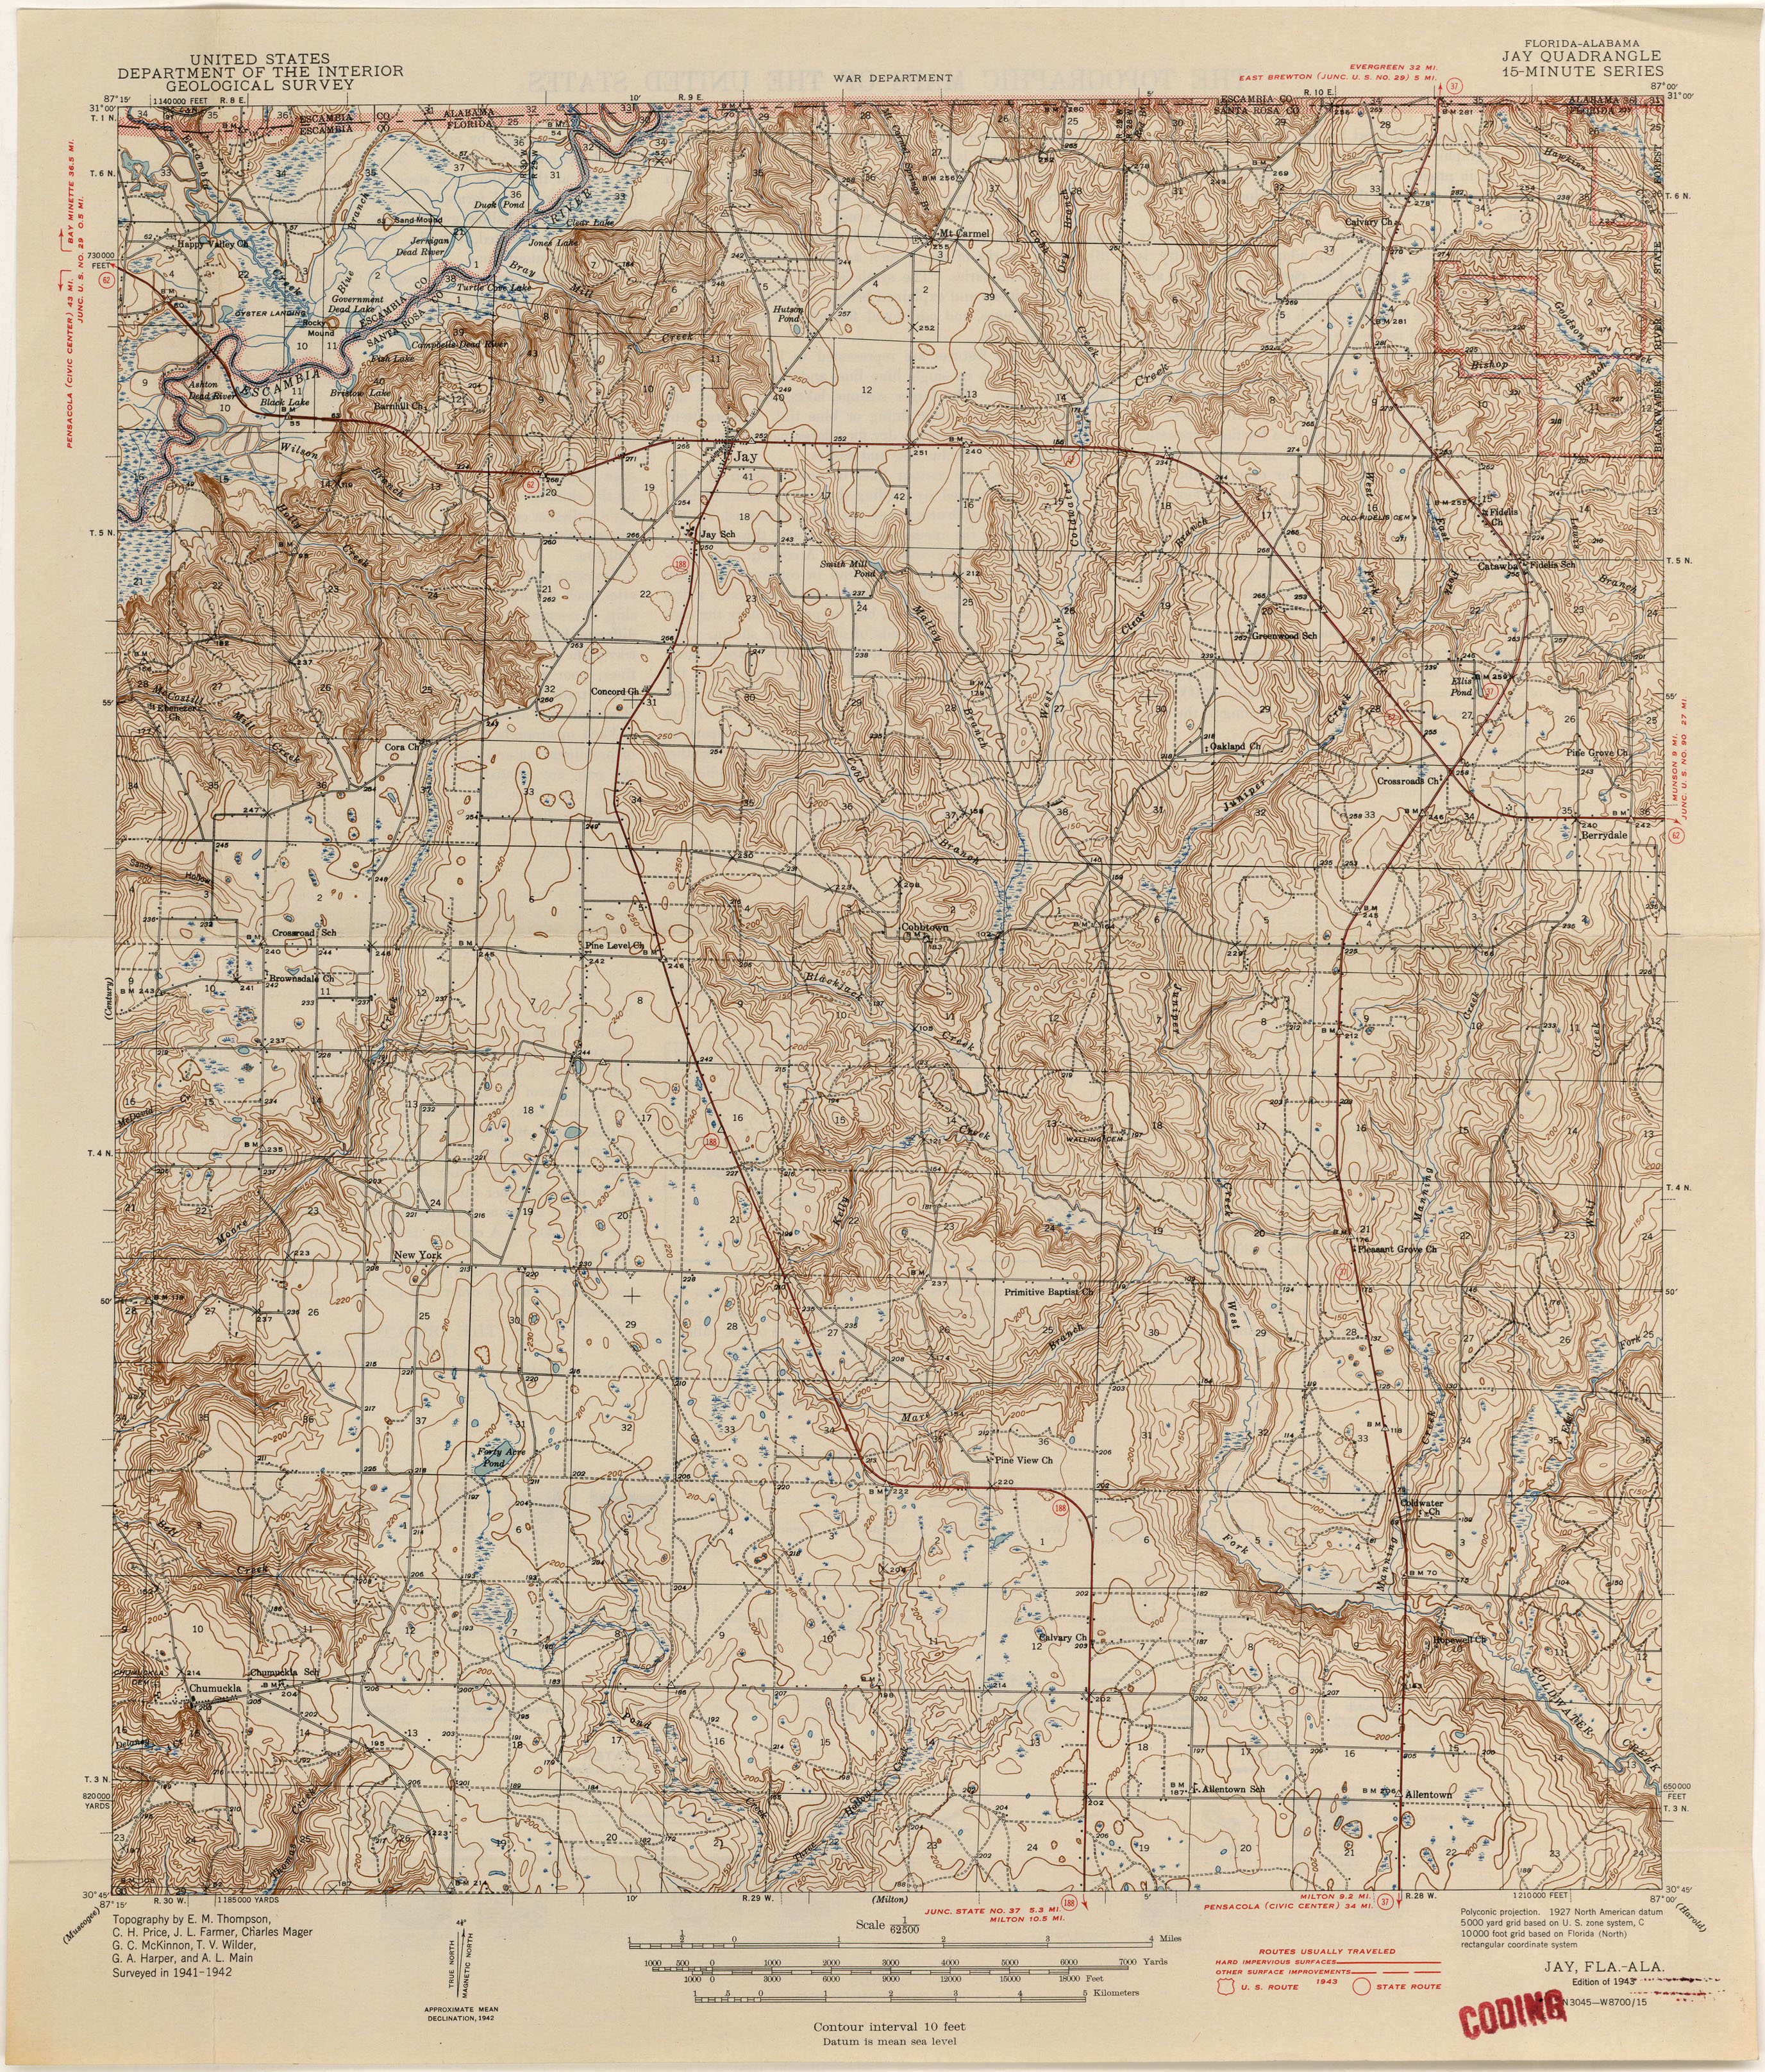 Florida Historical Topographic Maps - Perry-Castañeda Map ... on map of enterprise alabama, map gainesville fl, mapquest of jay fl, map of jay ok, map of central florida, map of jay vt, map of jay ny, map of georgia and florida,